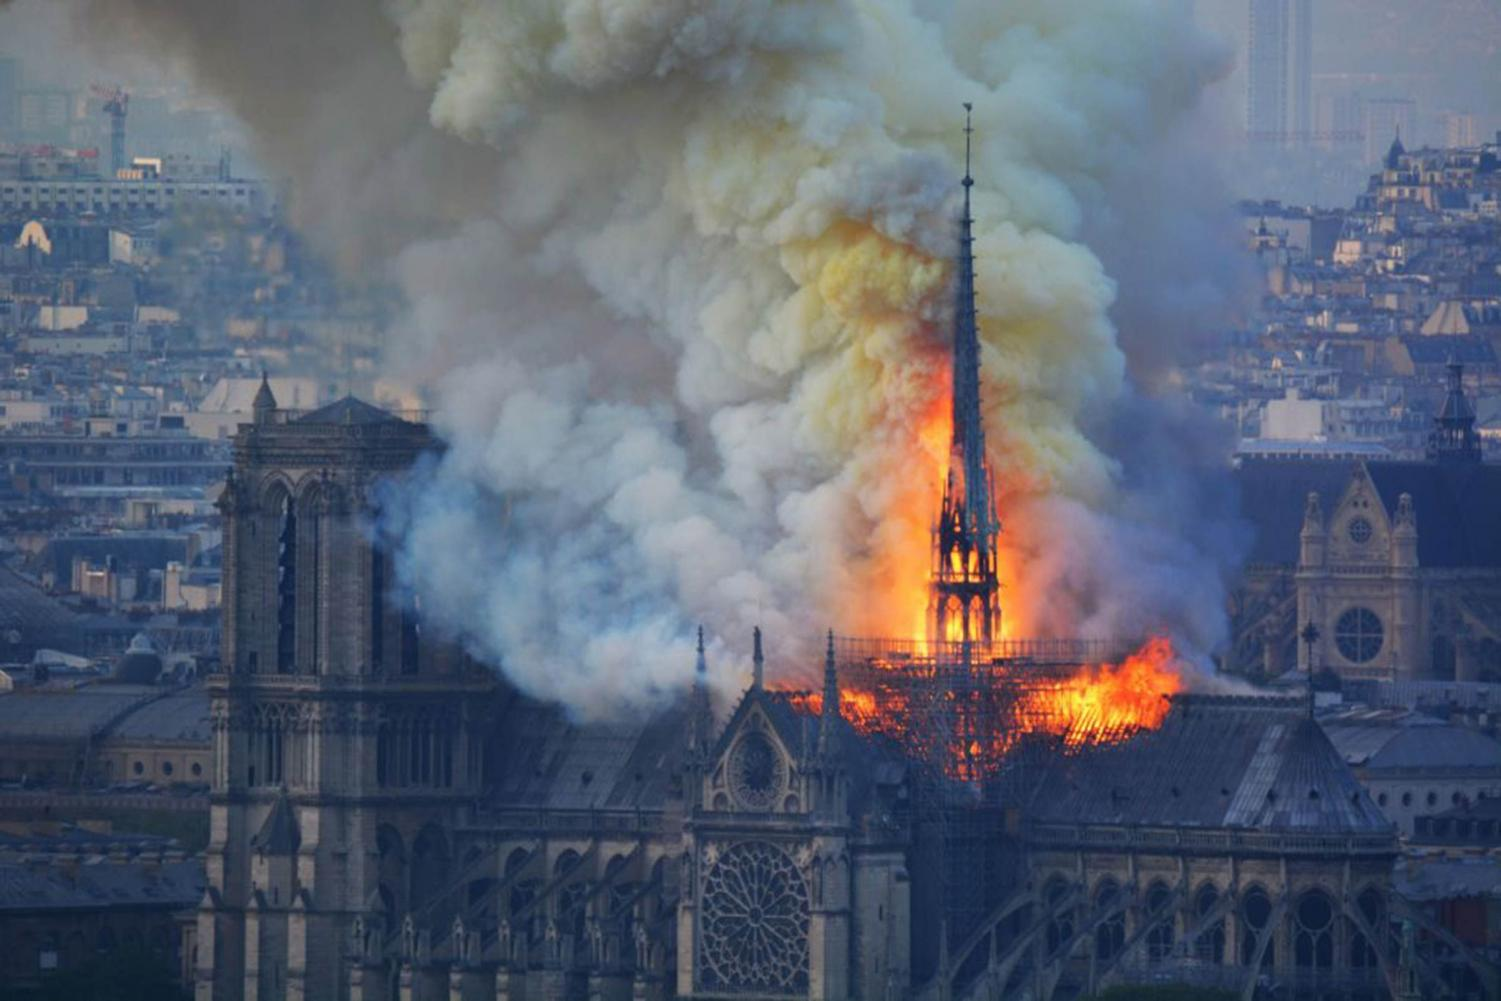 The Norte Dame Cathedral bursting in flames.